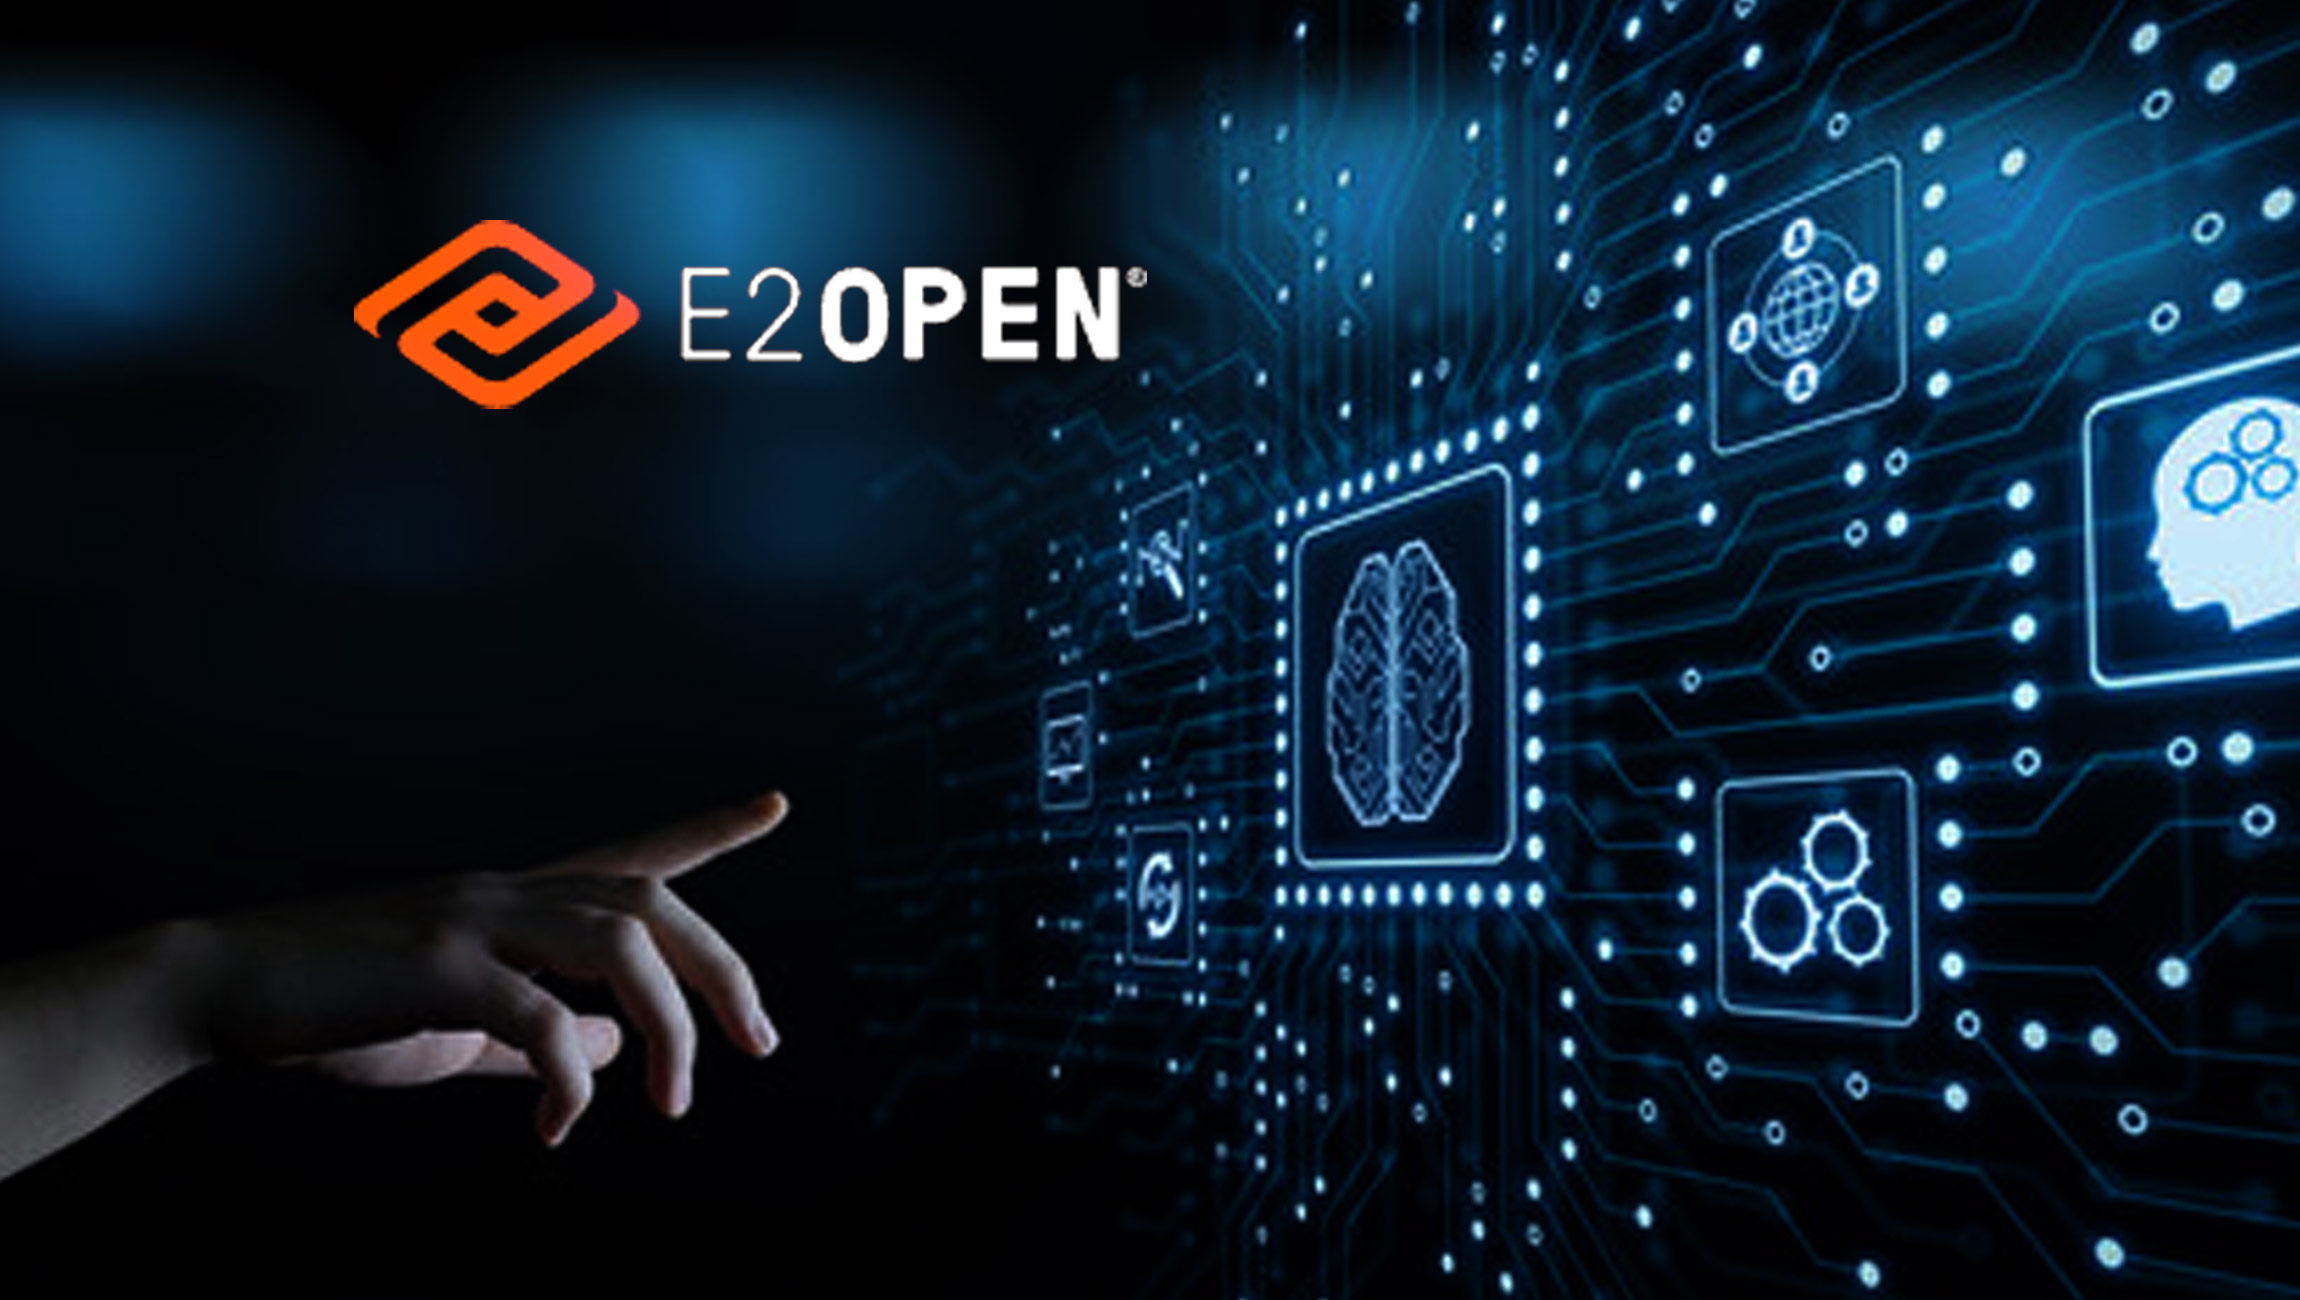 E2open's-Second-Quarter-Technology-Release-Deepens-Automation-and-Artificial-Intelligence-Deployment-Across-the-Platform